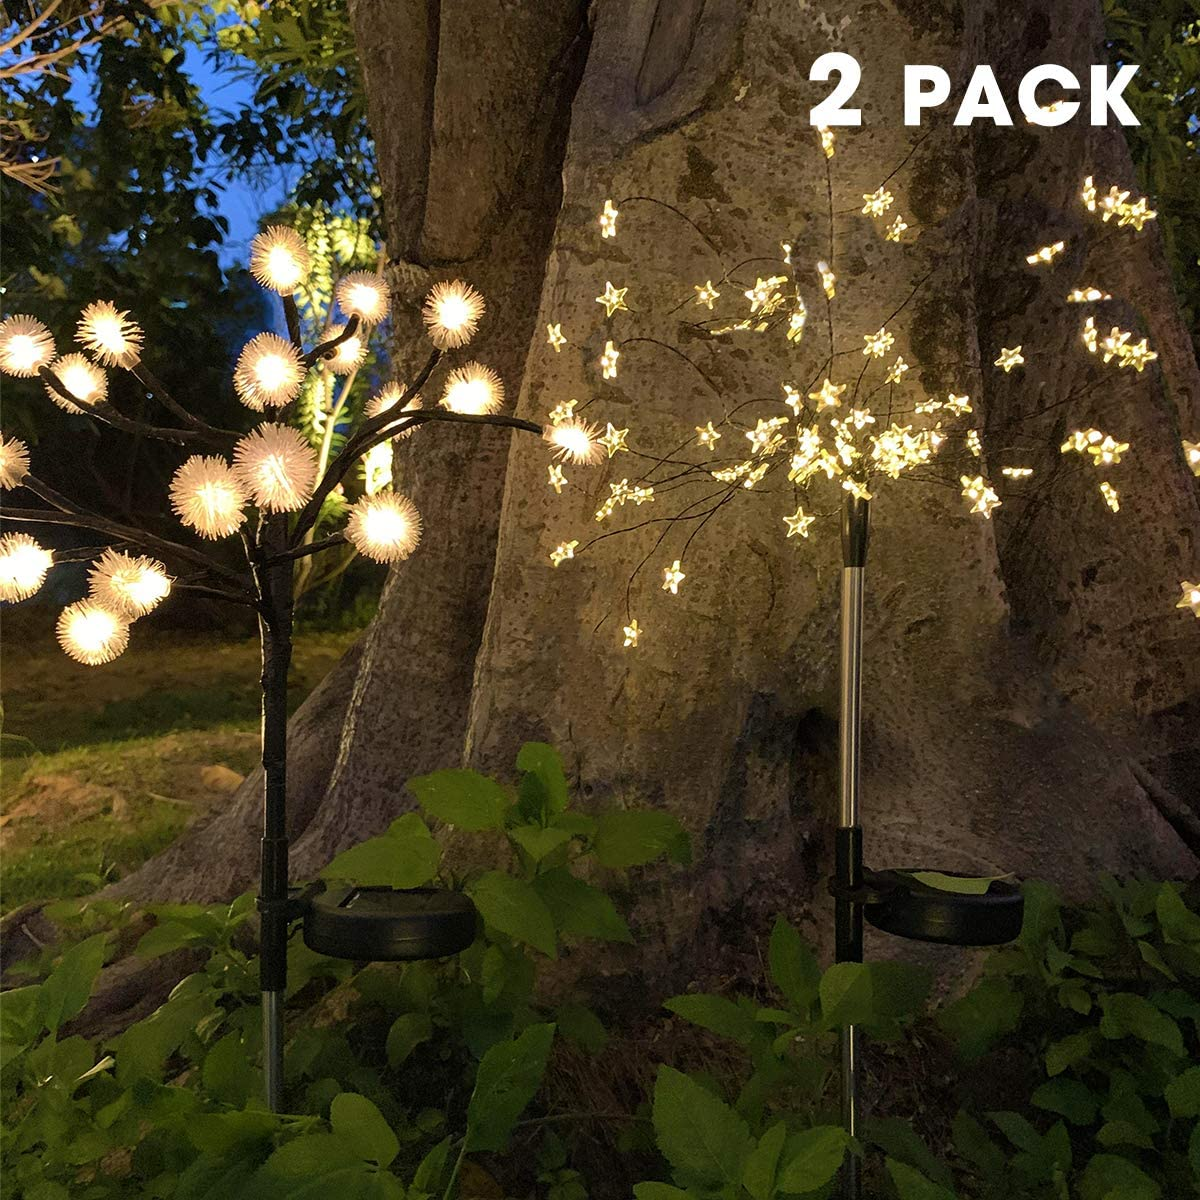 Upgraded Solar Garden Lights Outdoor, 2 Pack Solar Powered Pathway Lights Solar Fairy Flower Lights Waterproof for Garden Patio Yard Pathway Christmas Decoration (Warm White)